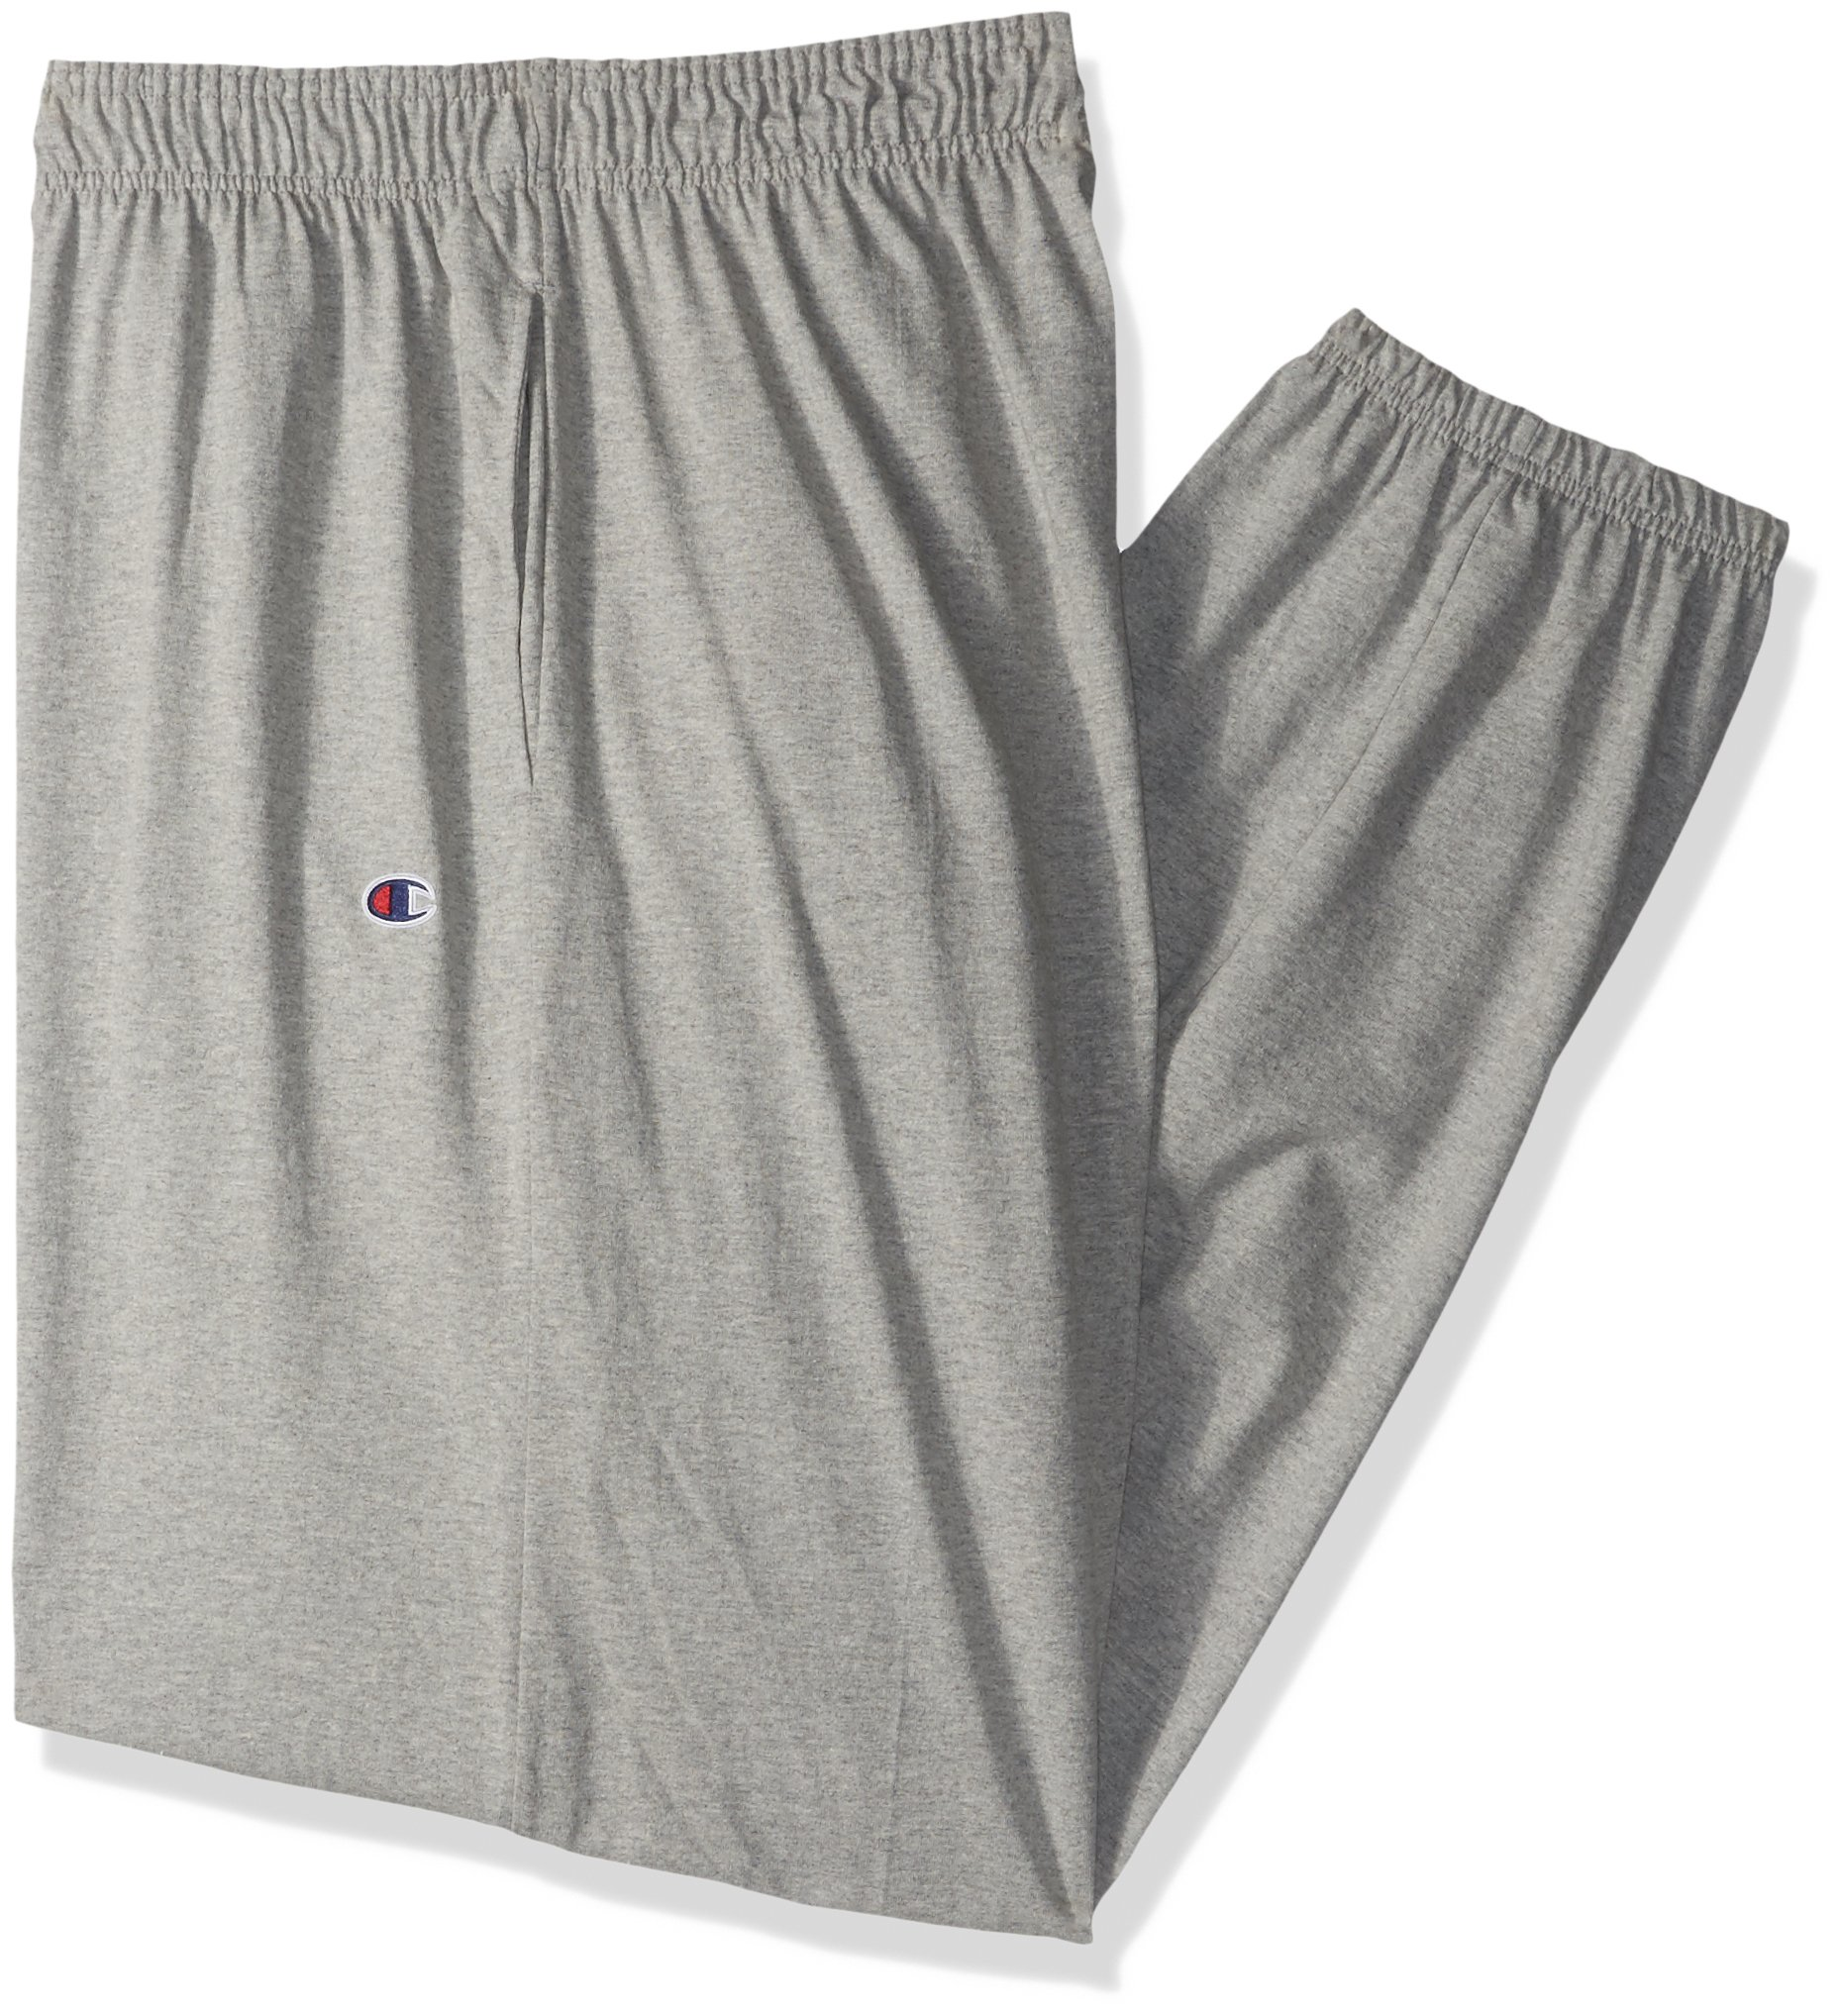 Champion Men's Closed Bottom Light Weight Jersey Sweatpant, Oxford Grey, 3XL by Champion